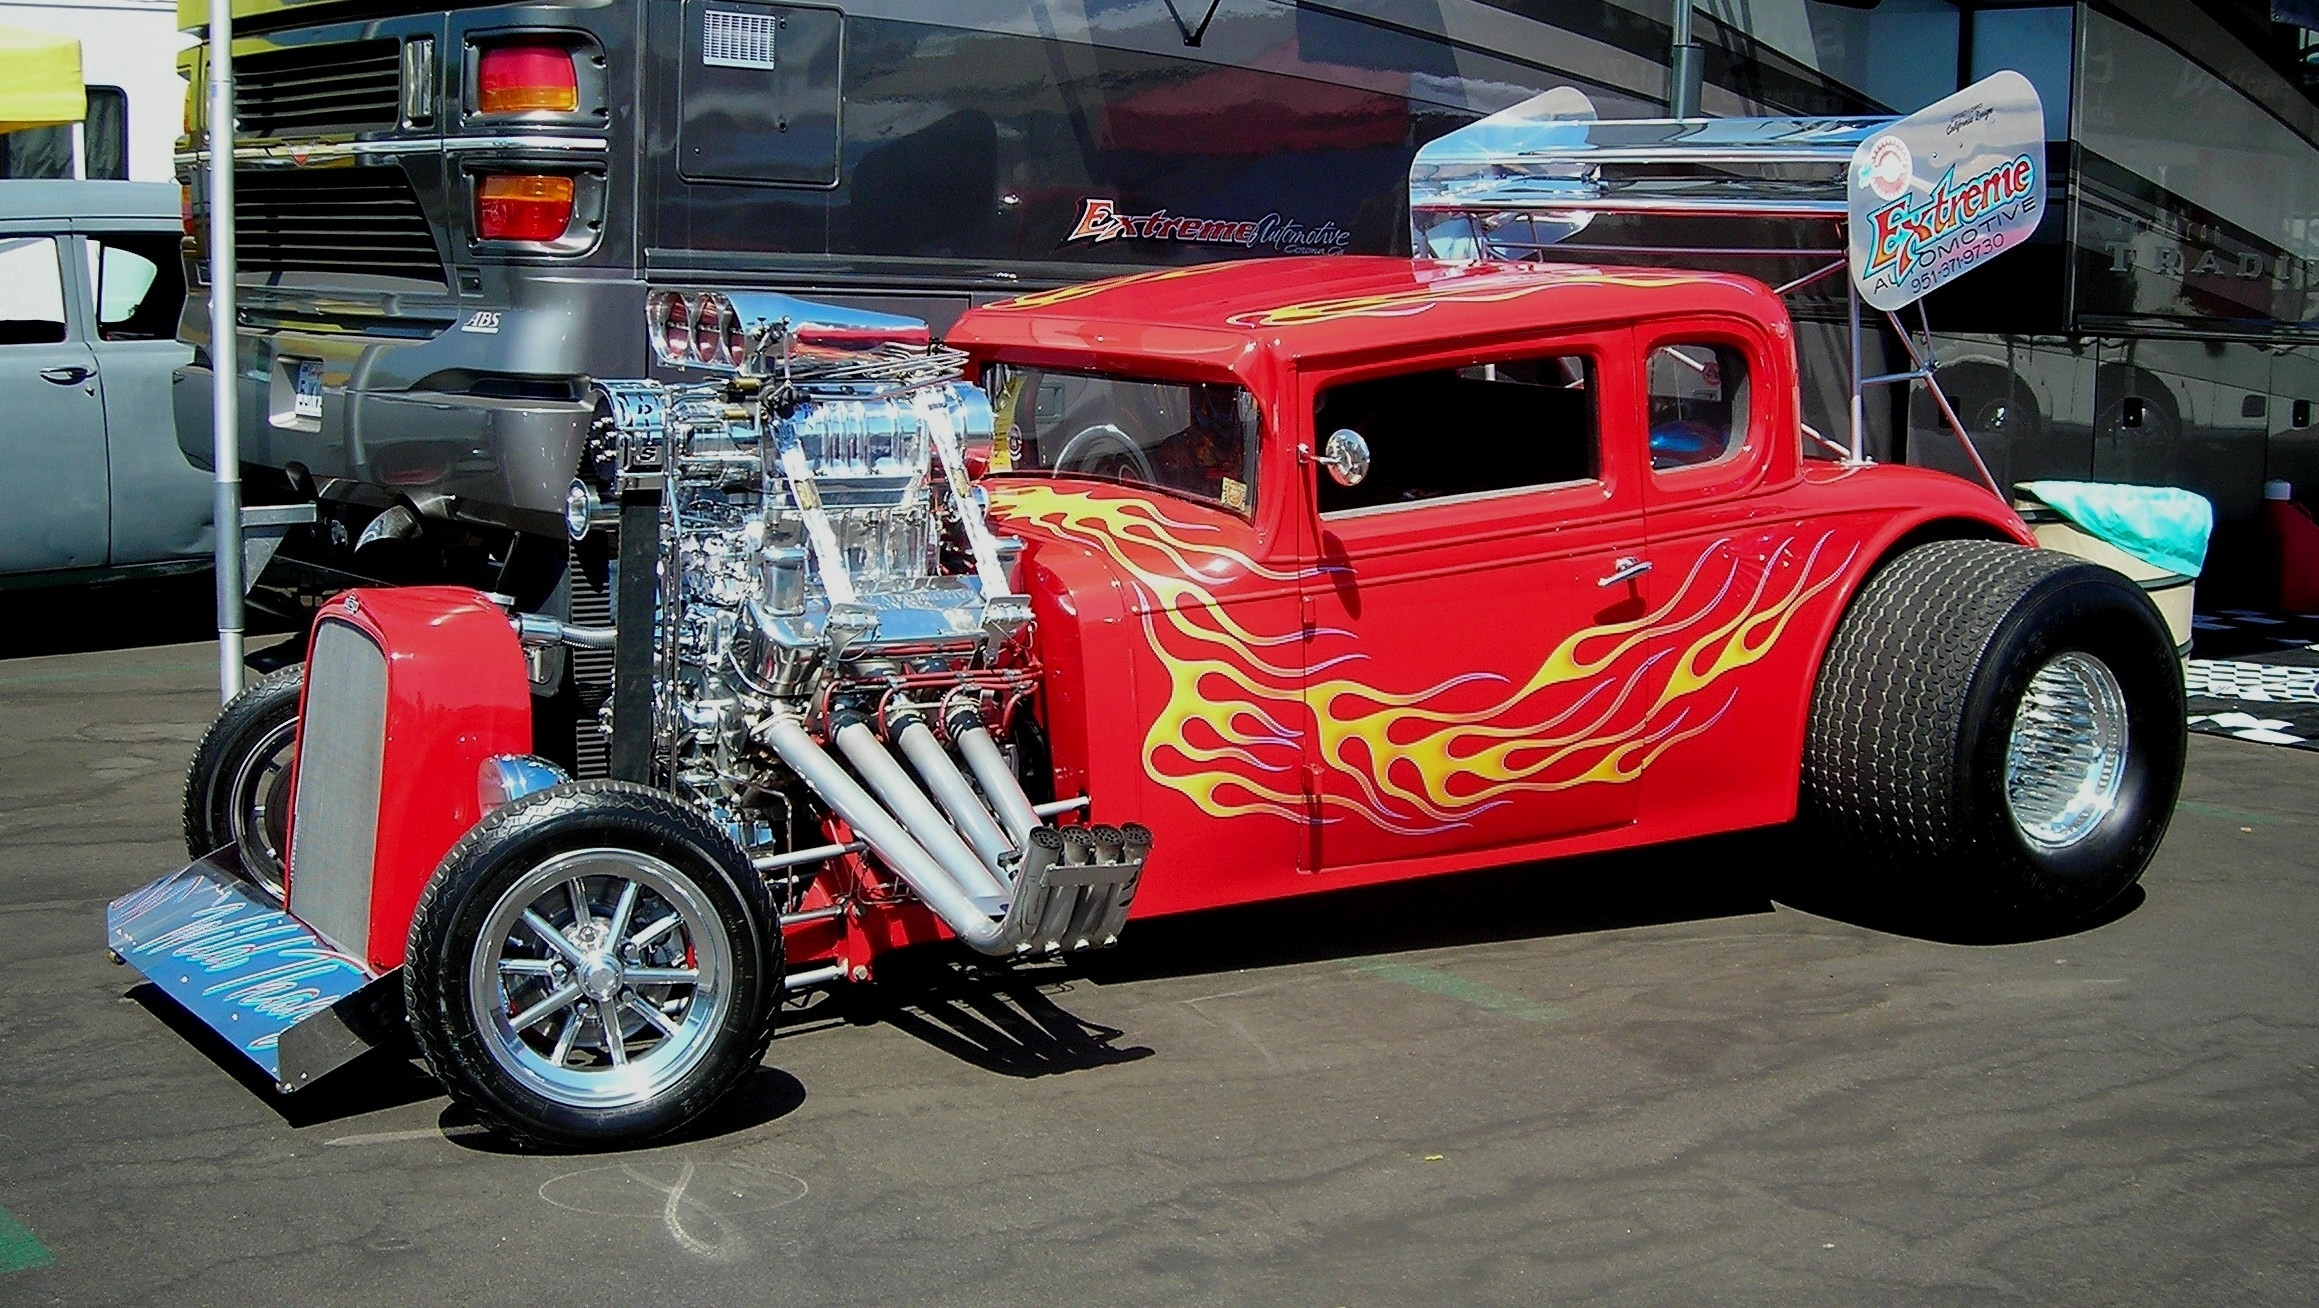 vehicles cars custom engine chrome hot rod classic old retro wheels muscle blower ford